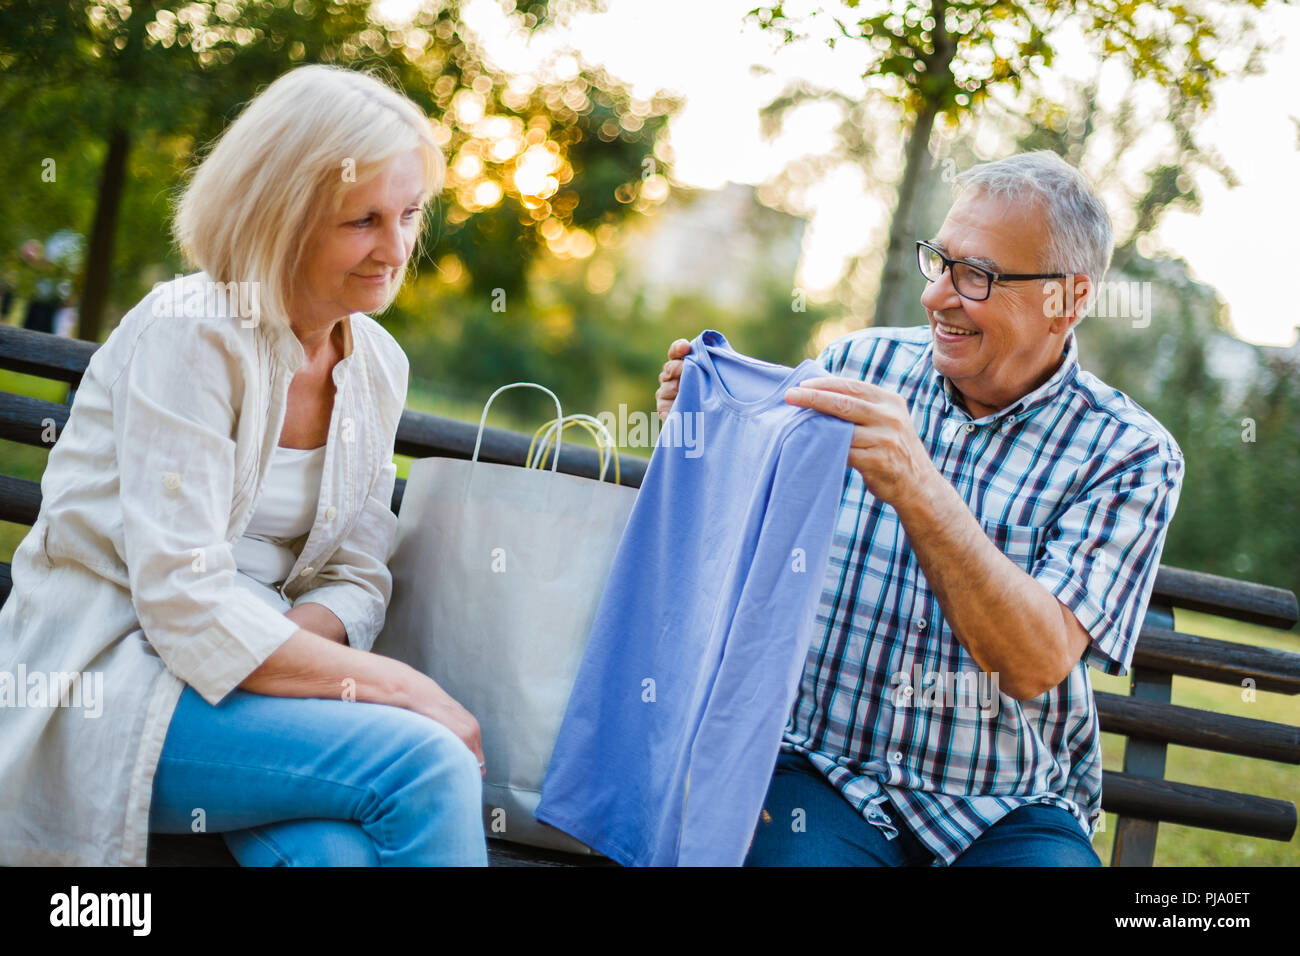 Woman is displeased with gifts from her man. - Stock Image